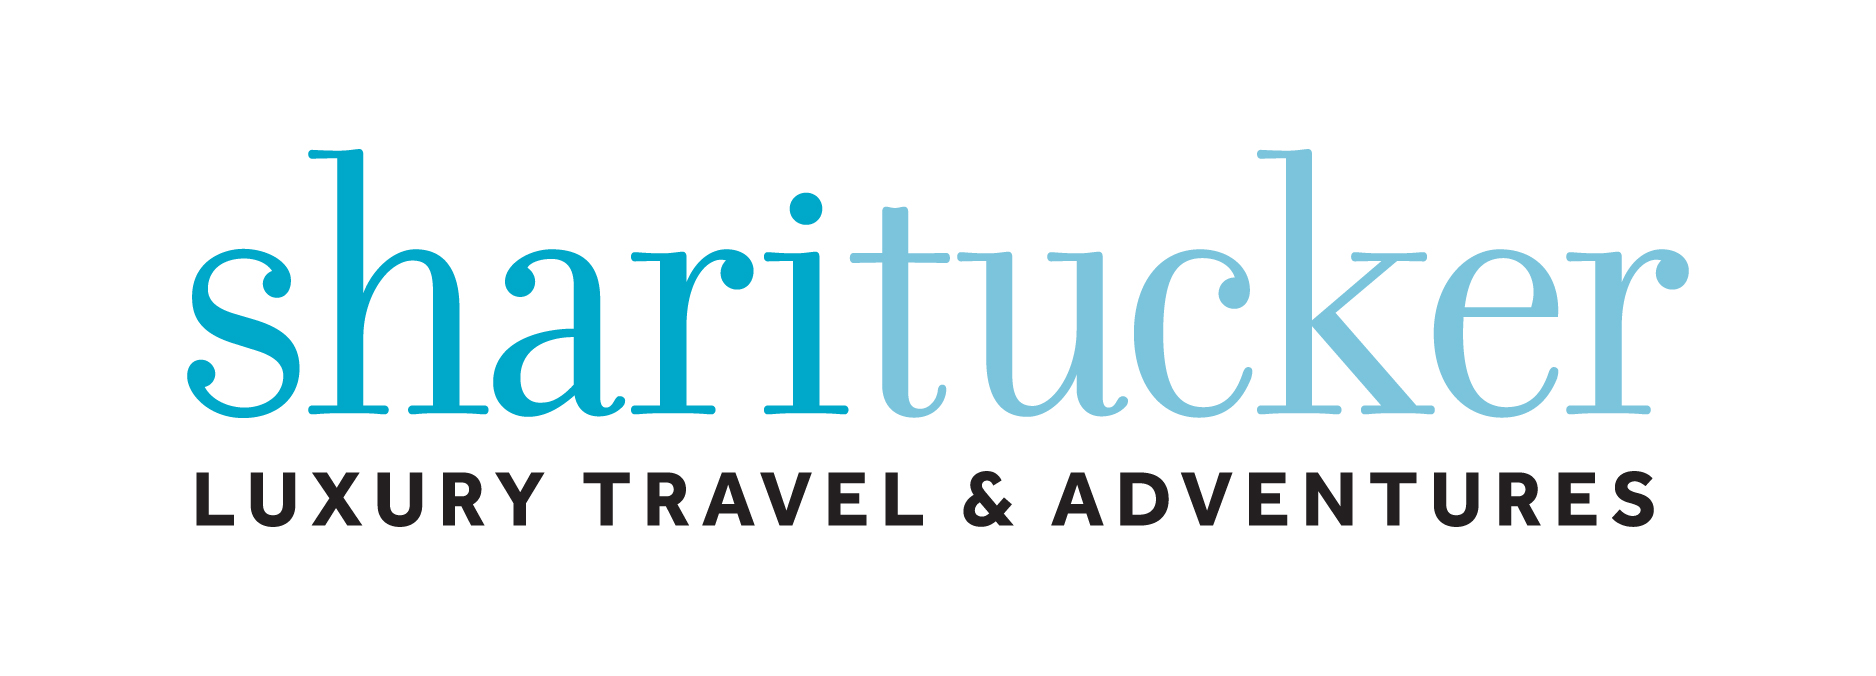 Shari Tucker Luxury Travel & Adventures